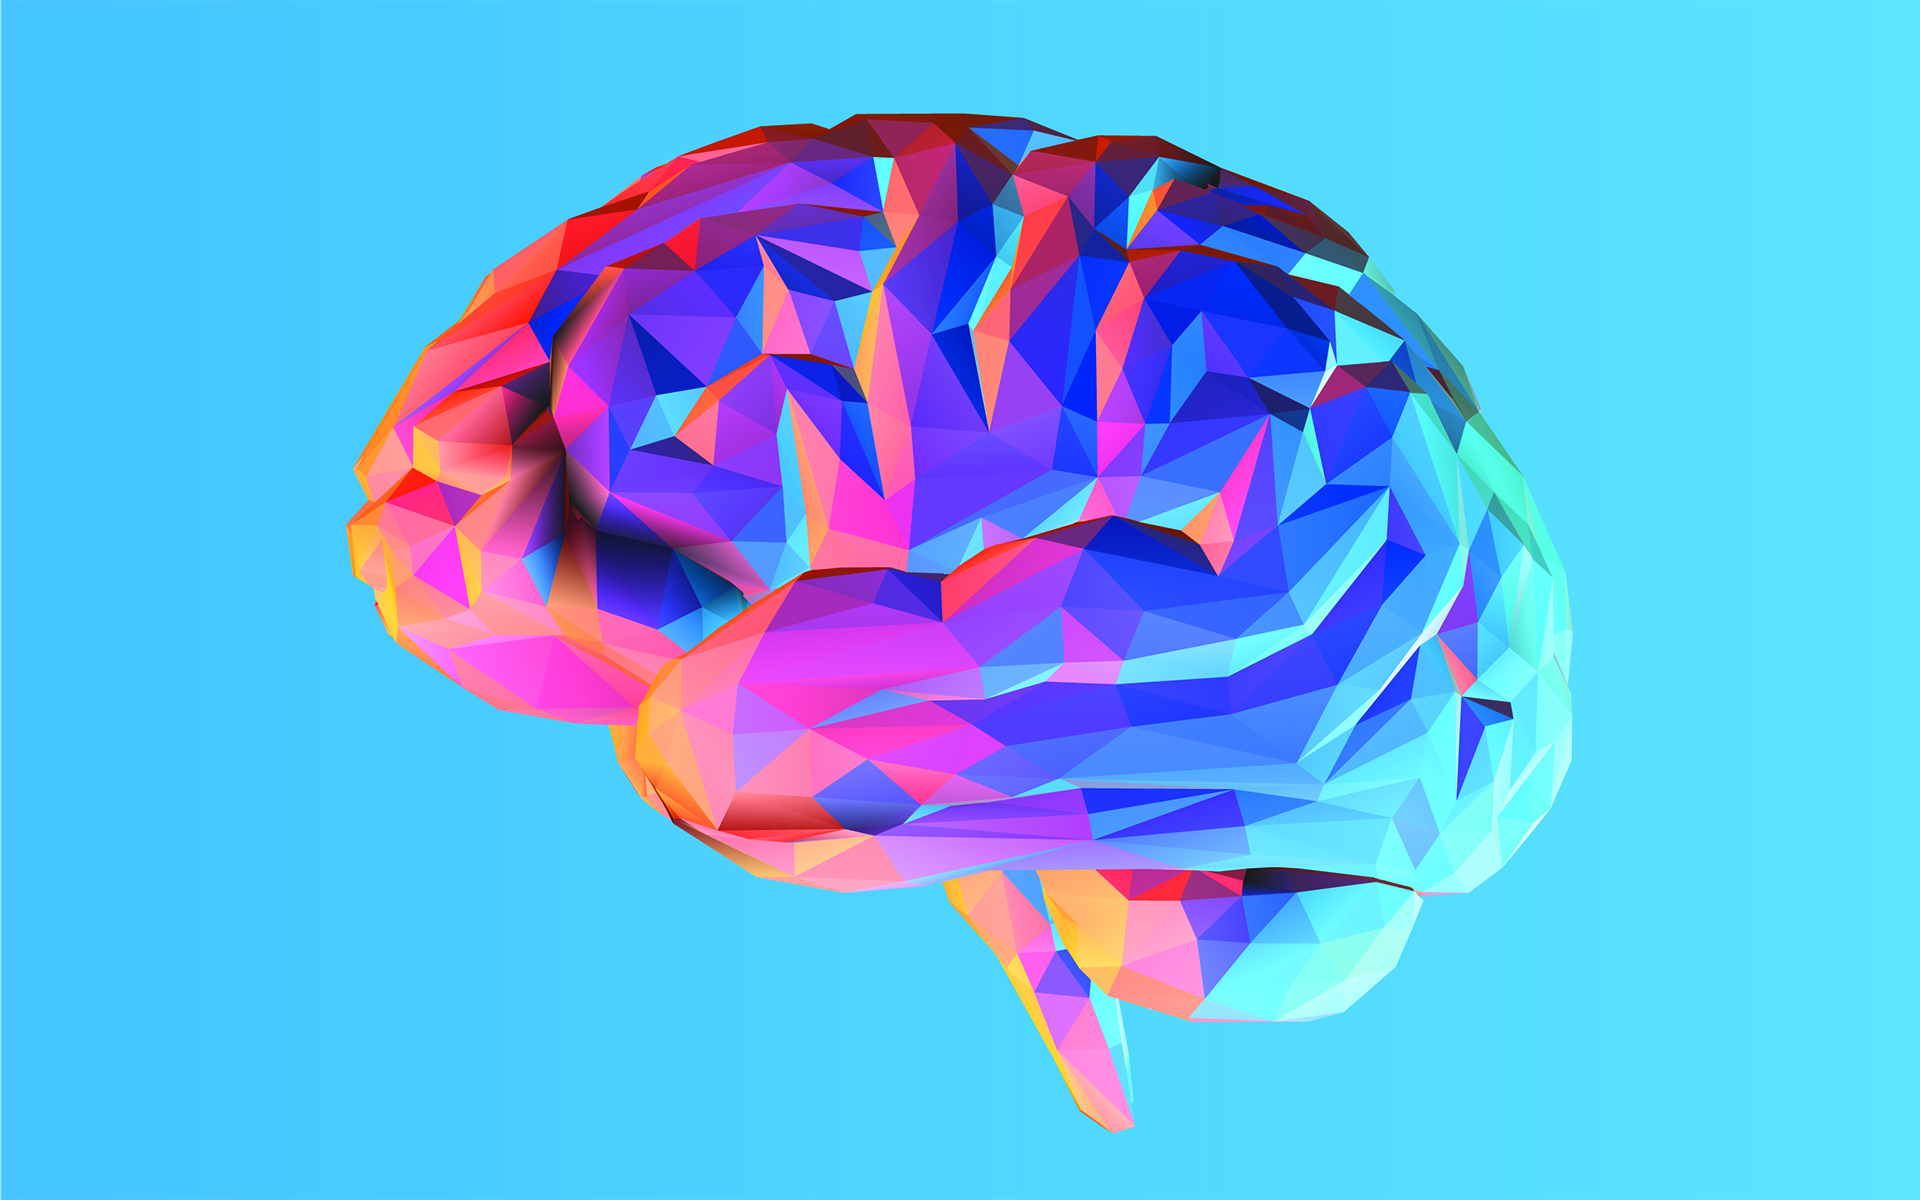 How Your Brain Creates Your Sense of Self - Colorful side view brain illustration isolated on blue background